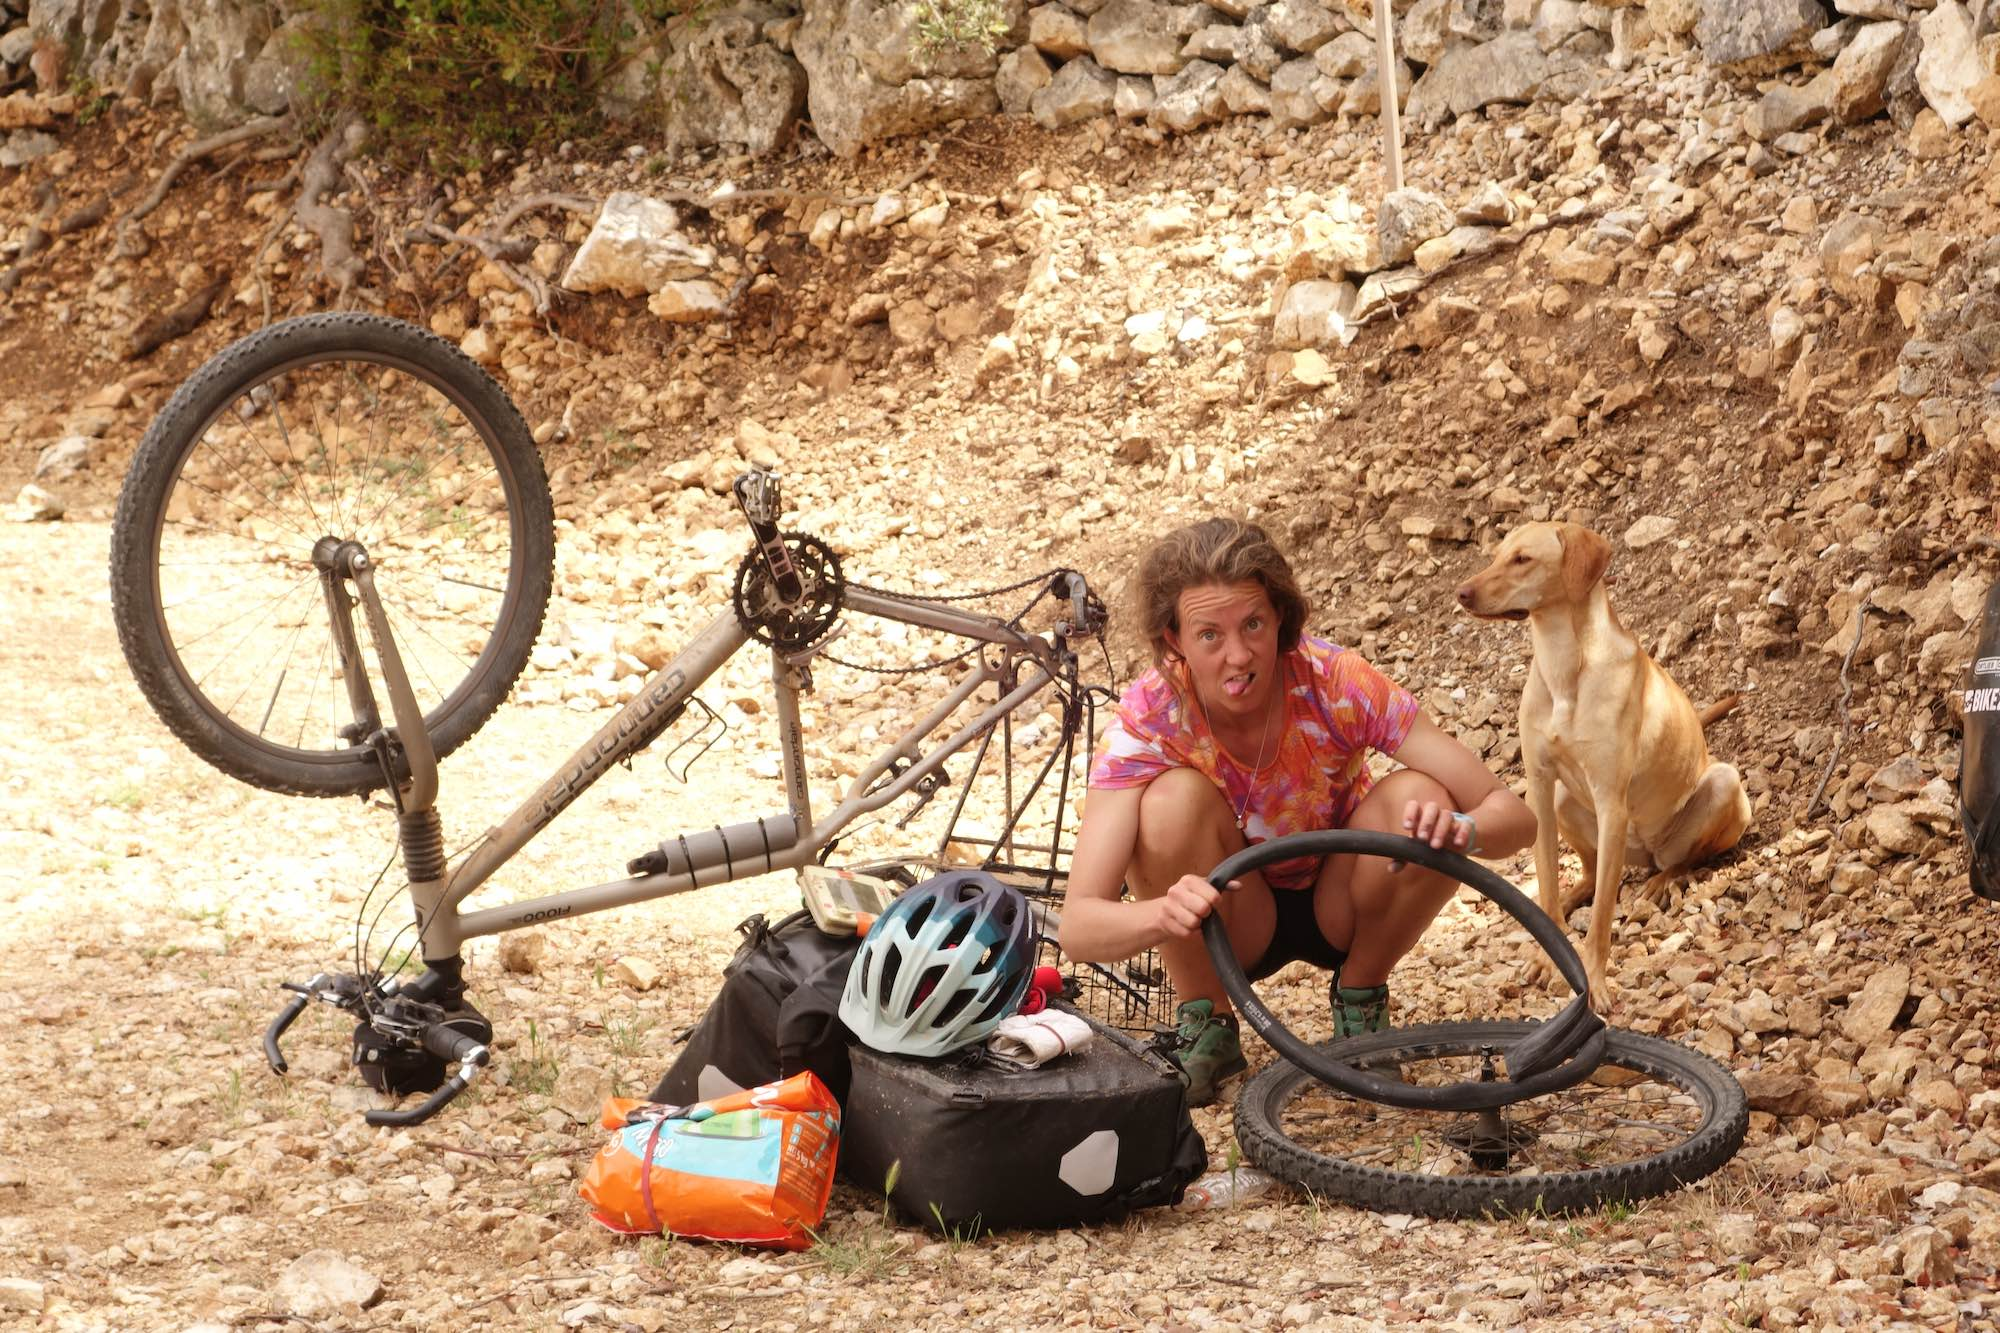 Repairing a puncture on the bike in Croatia